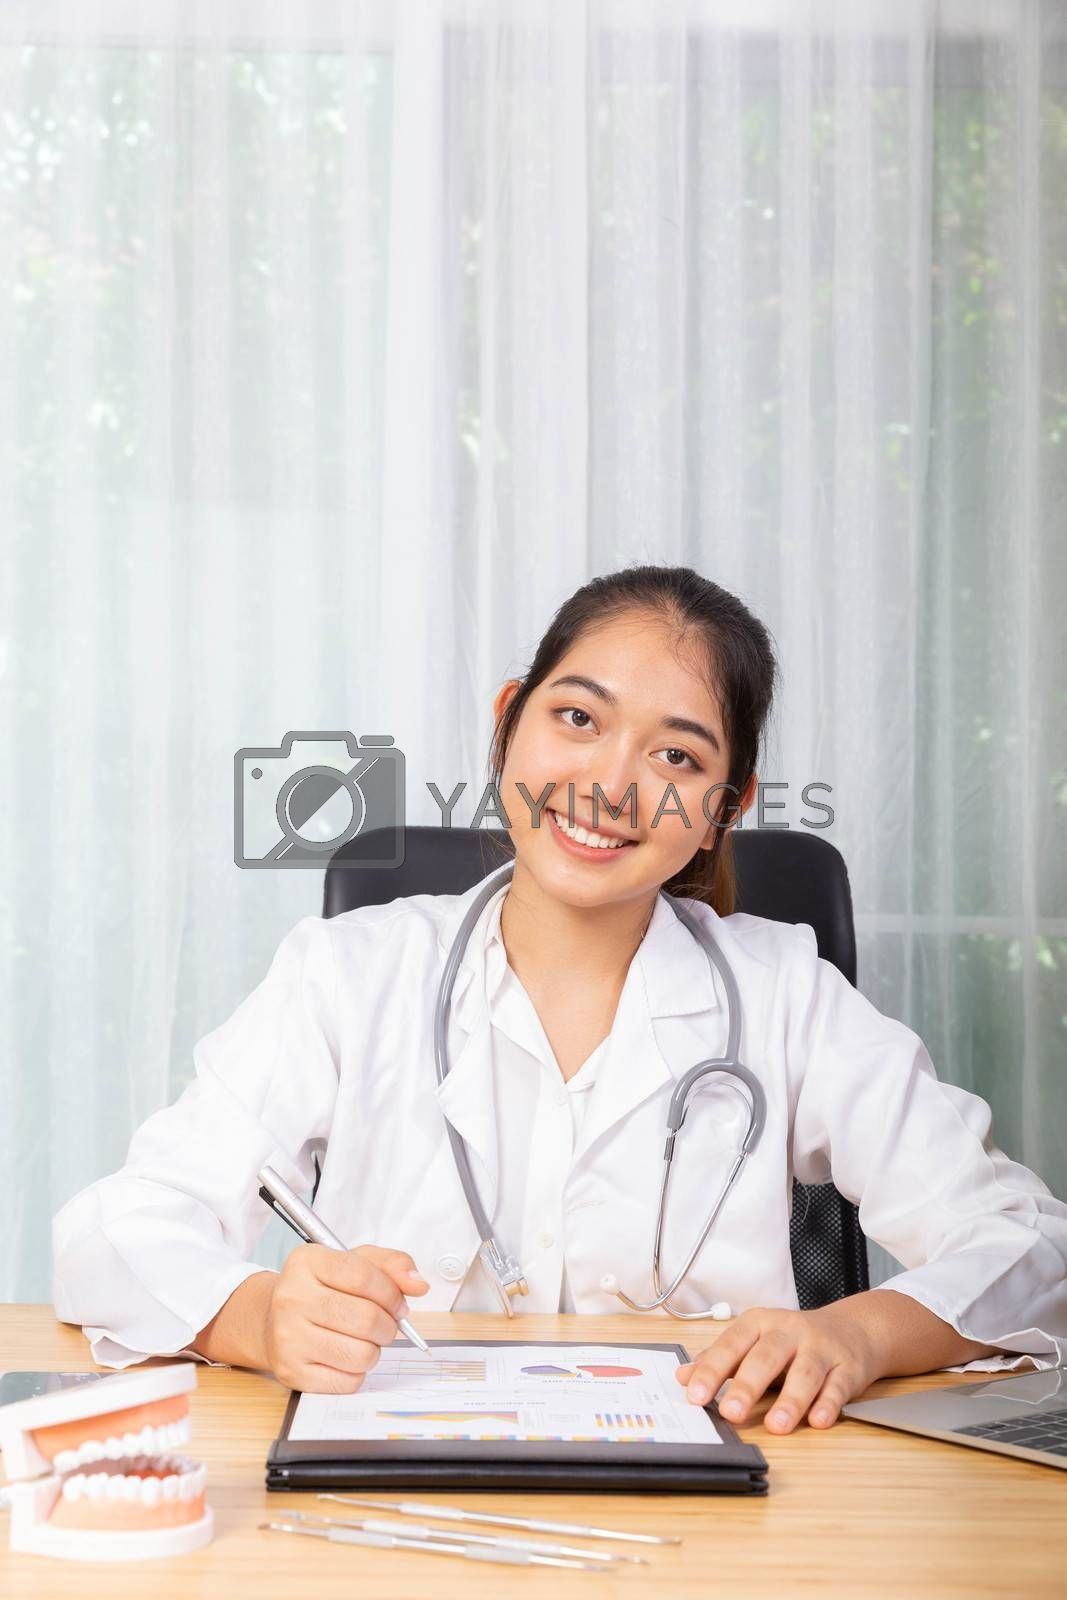 A women doctor is smiling working with her computer notbooke in her office in hospital